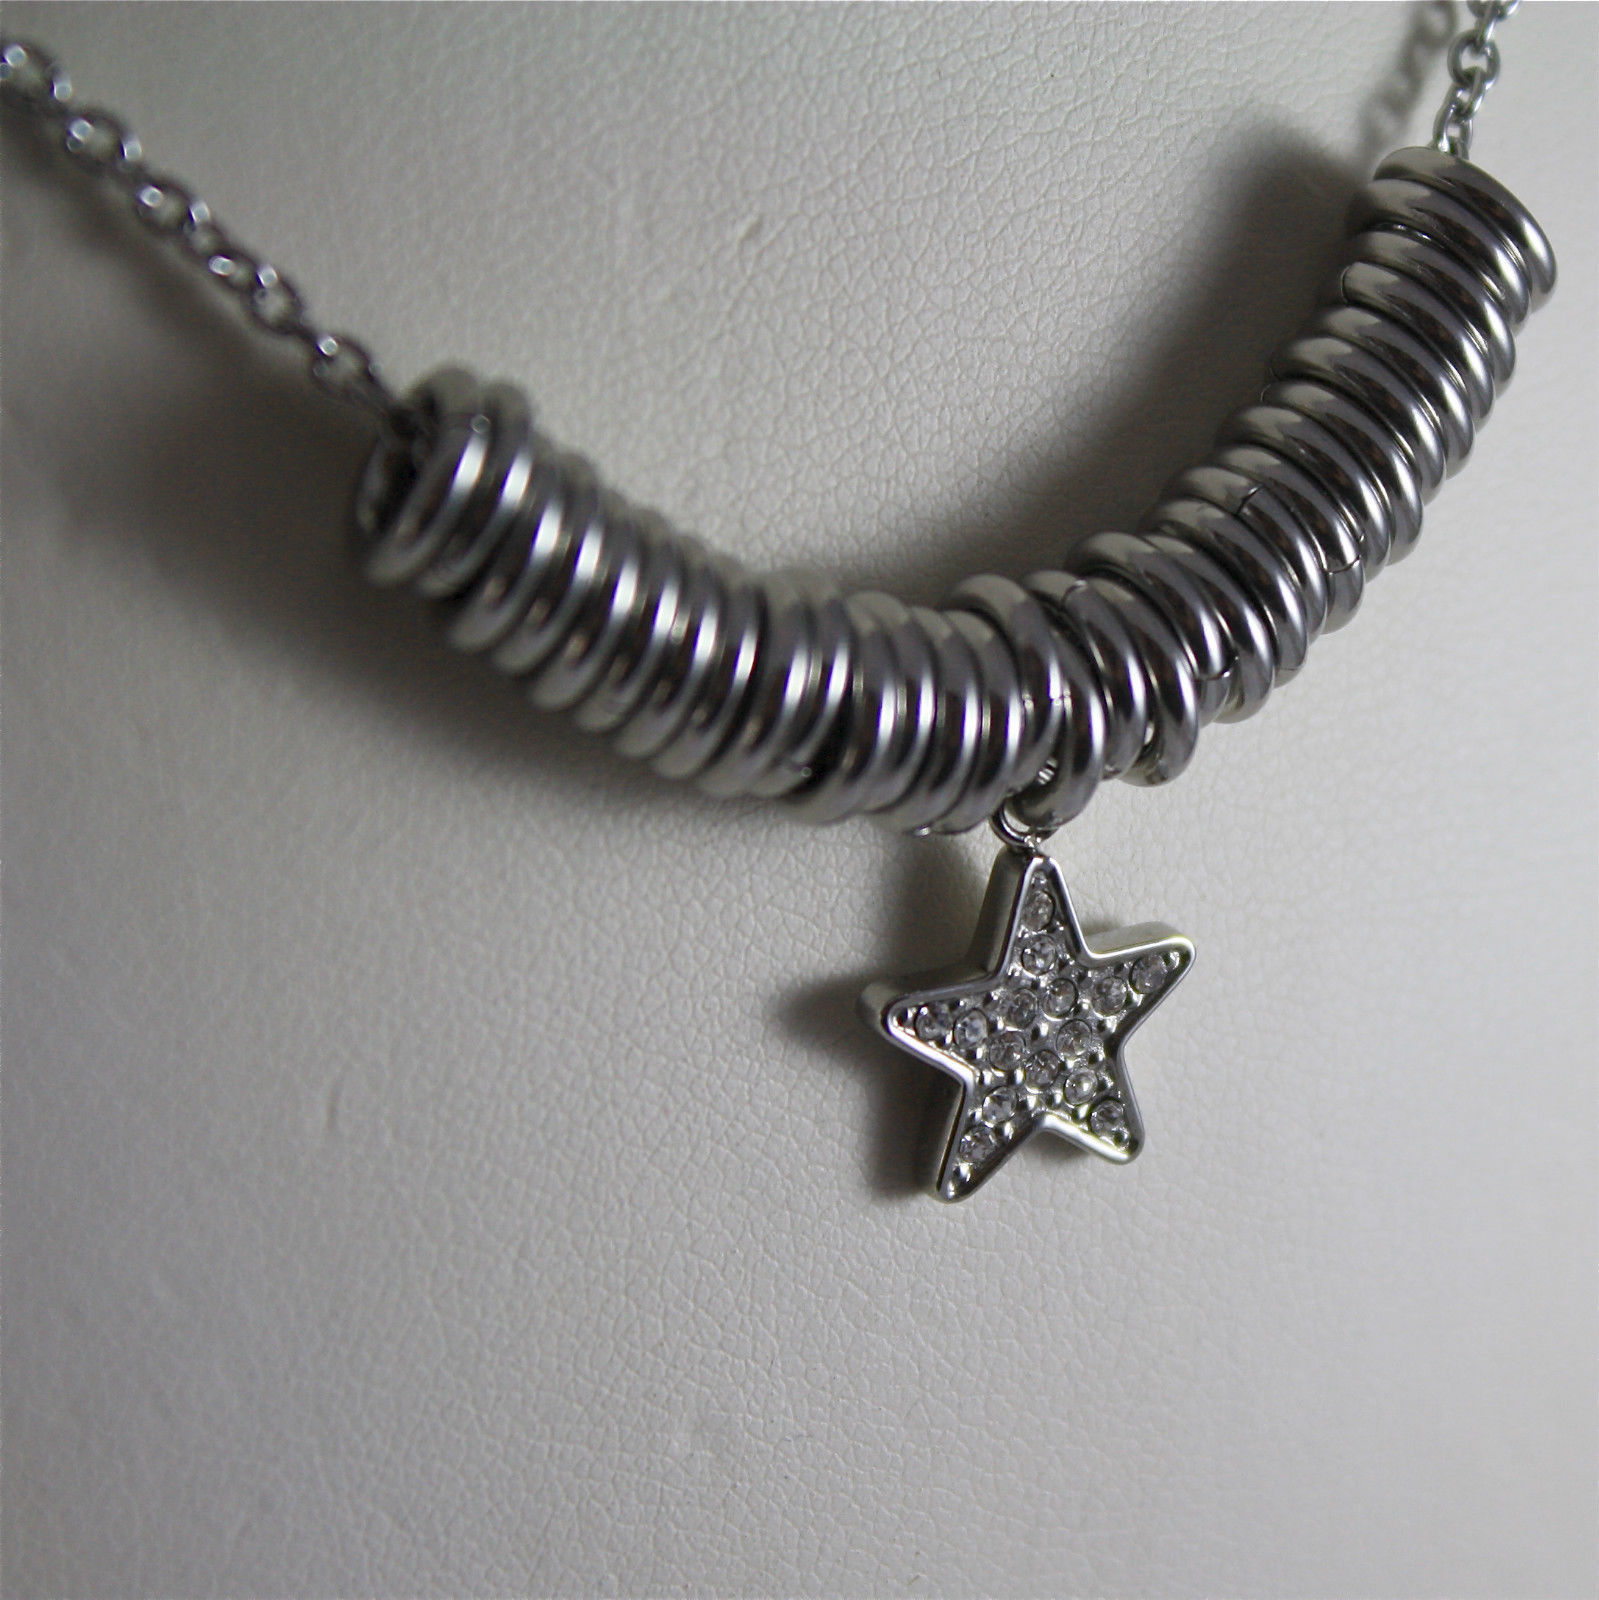 S'AGAPO' NECKLACE, 316L STEEL, STAR PENDANT, FACETED CRYSTAL.